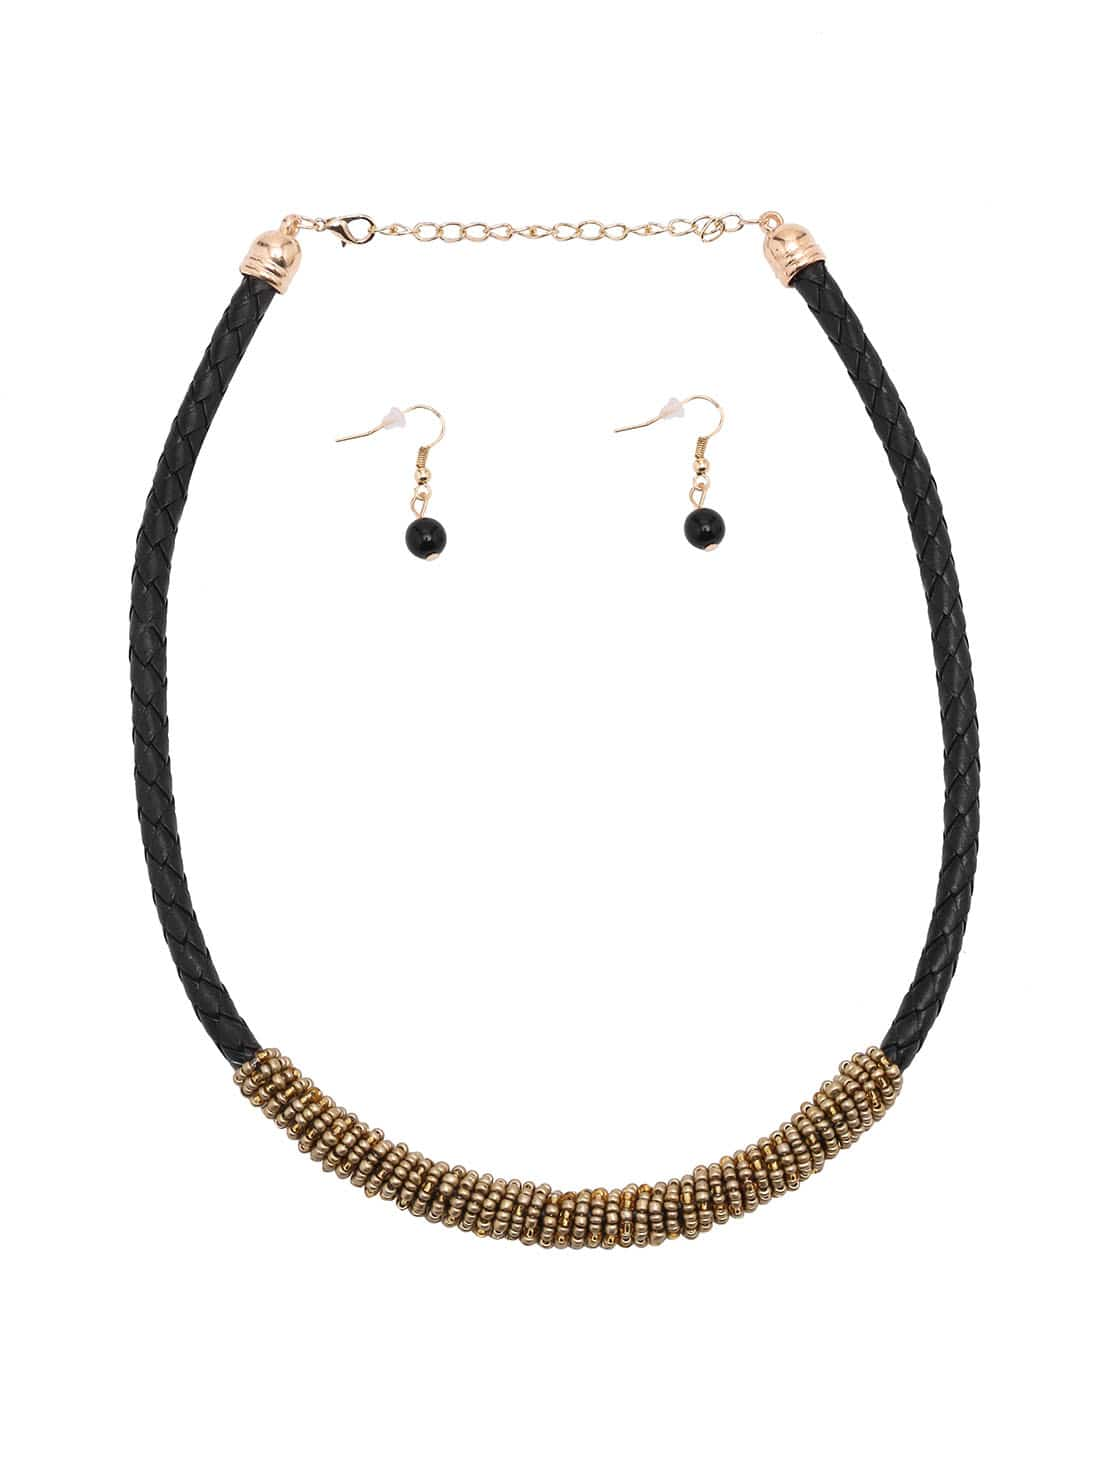 Brown Beaded Woven Gold Metal Choker Jewelry Set